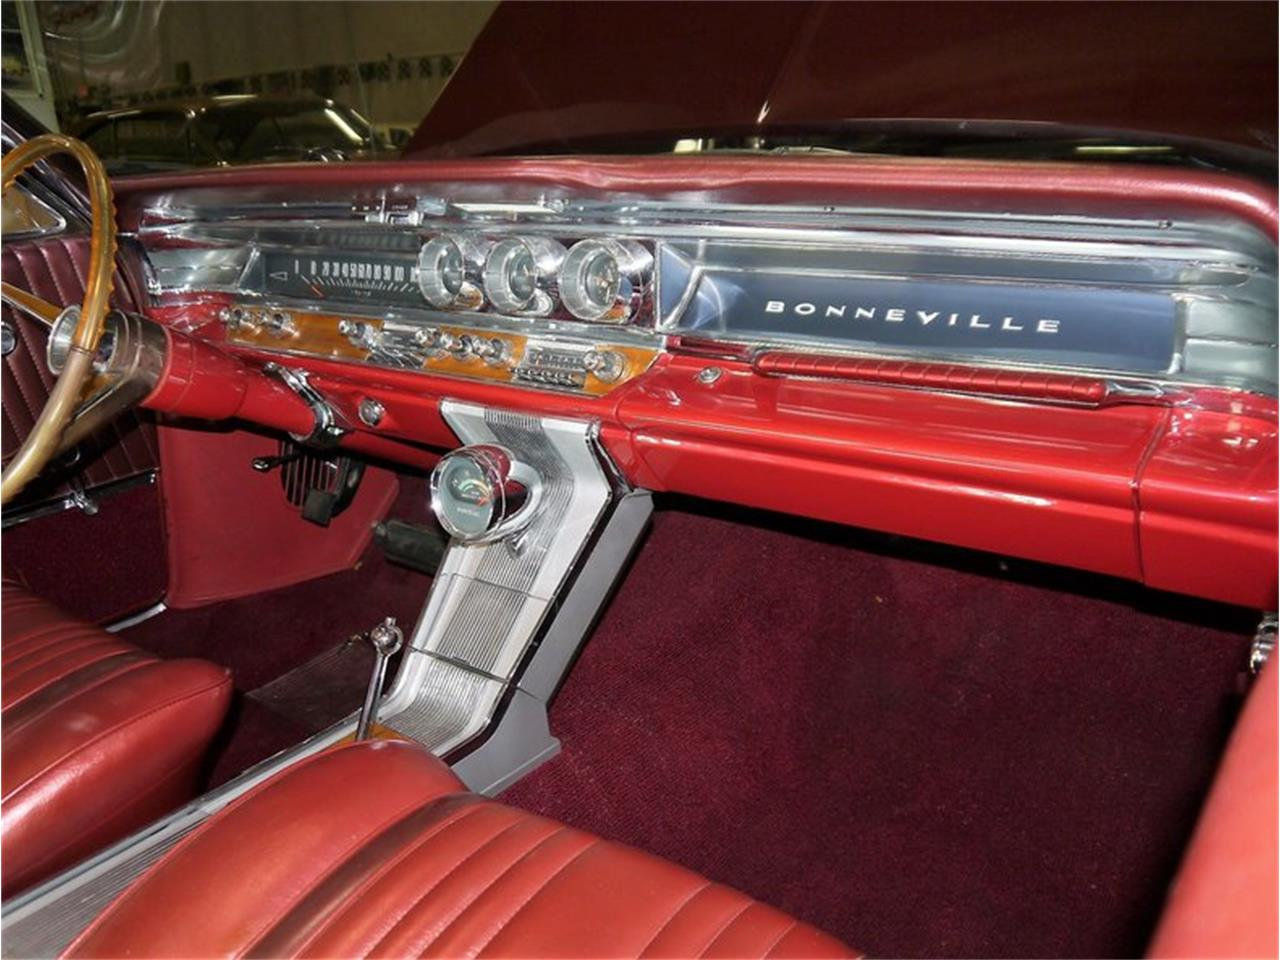 Large Picture of Classic '63 Bonneville located in Illinois - $29,900.00 - LAZG